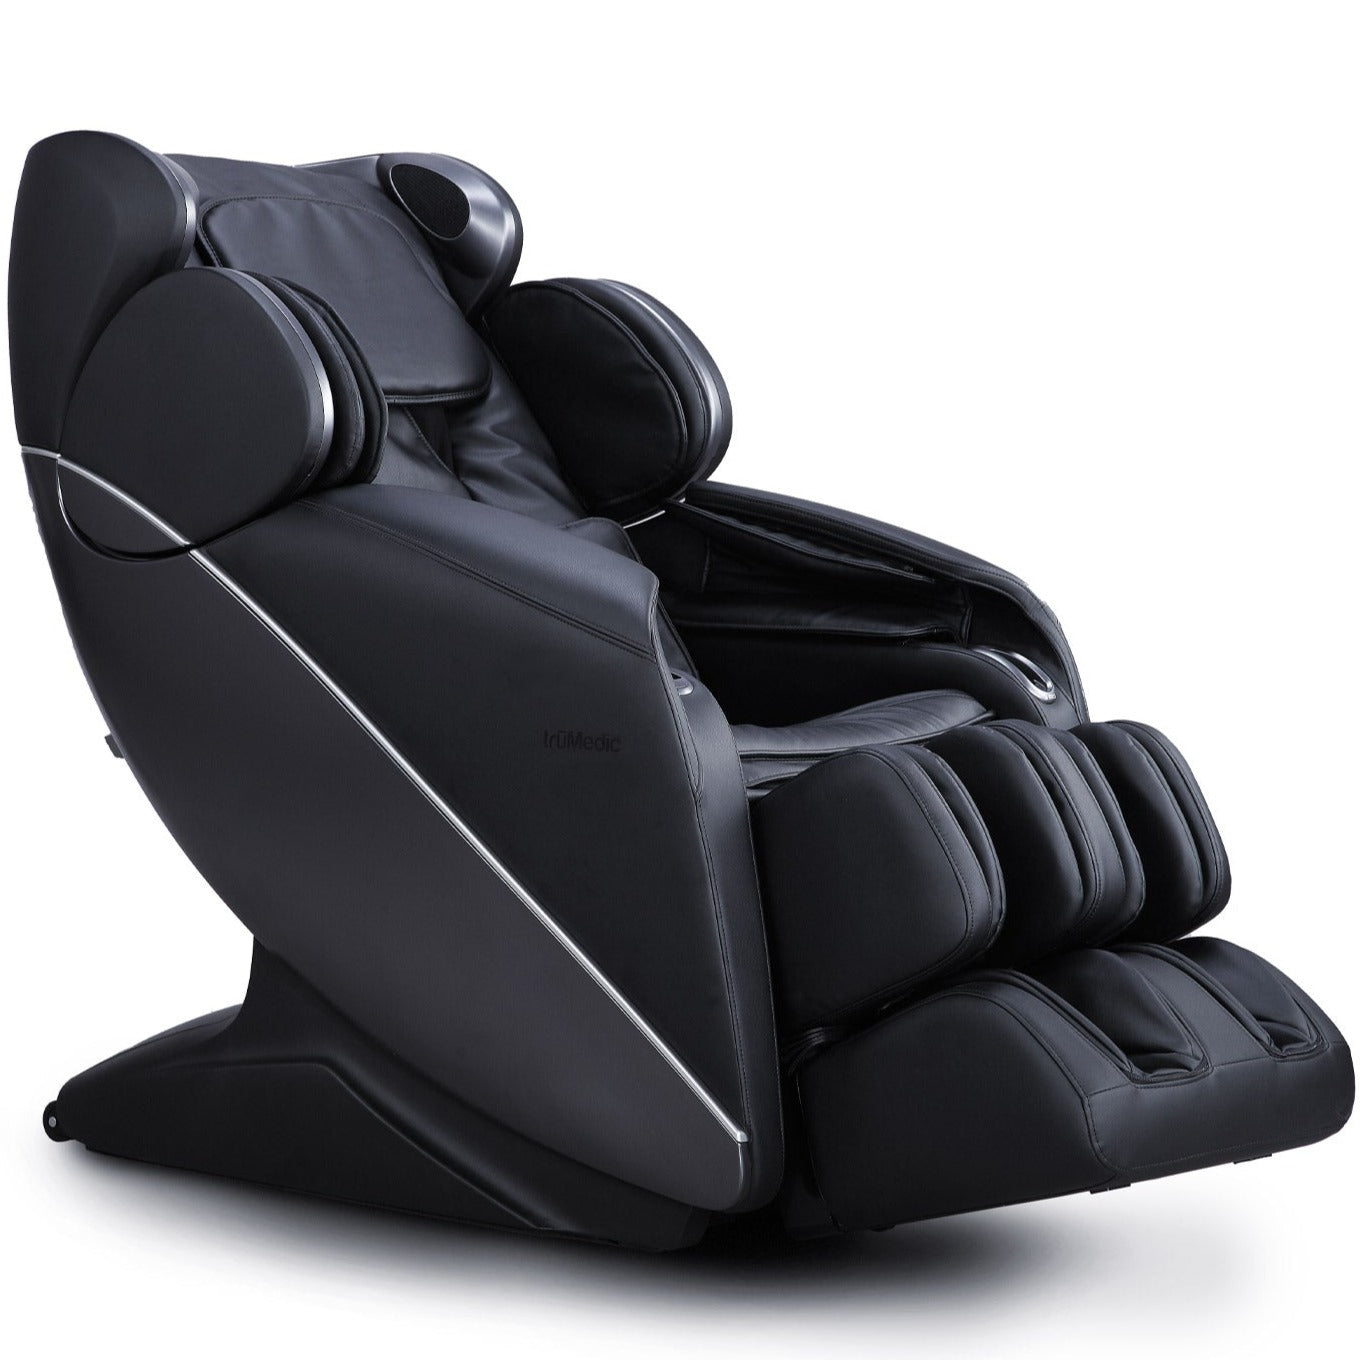 InstaShiatsu+ Massage Chair MC-3500